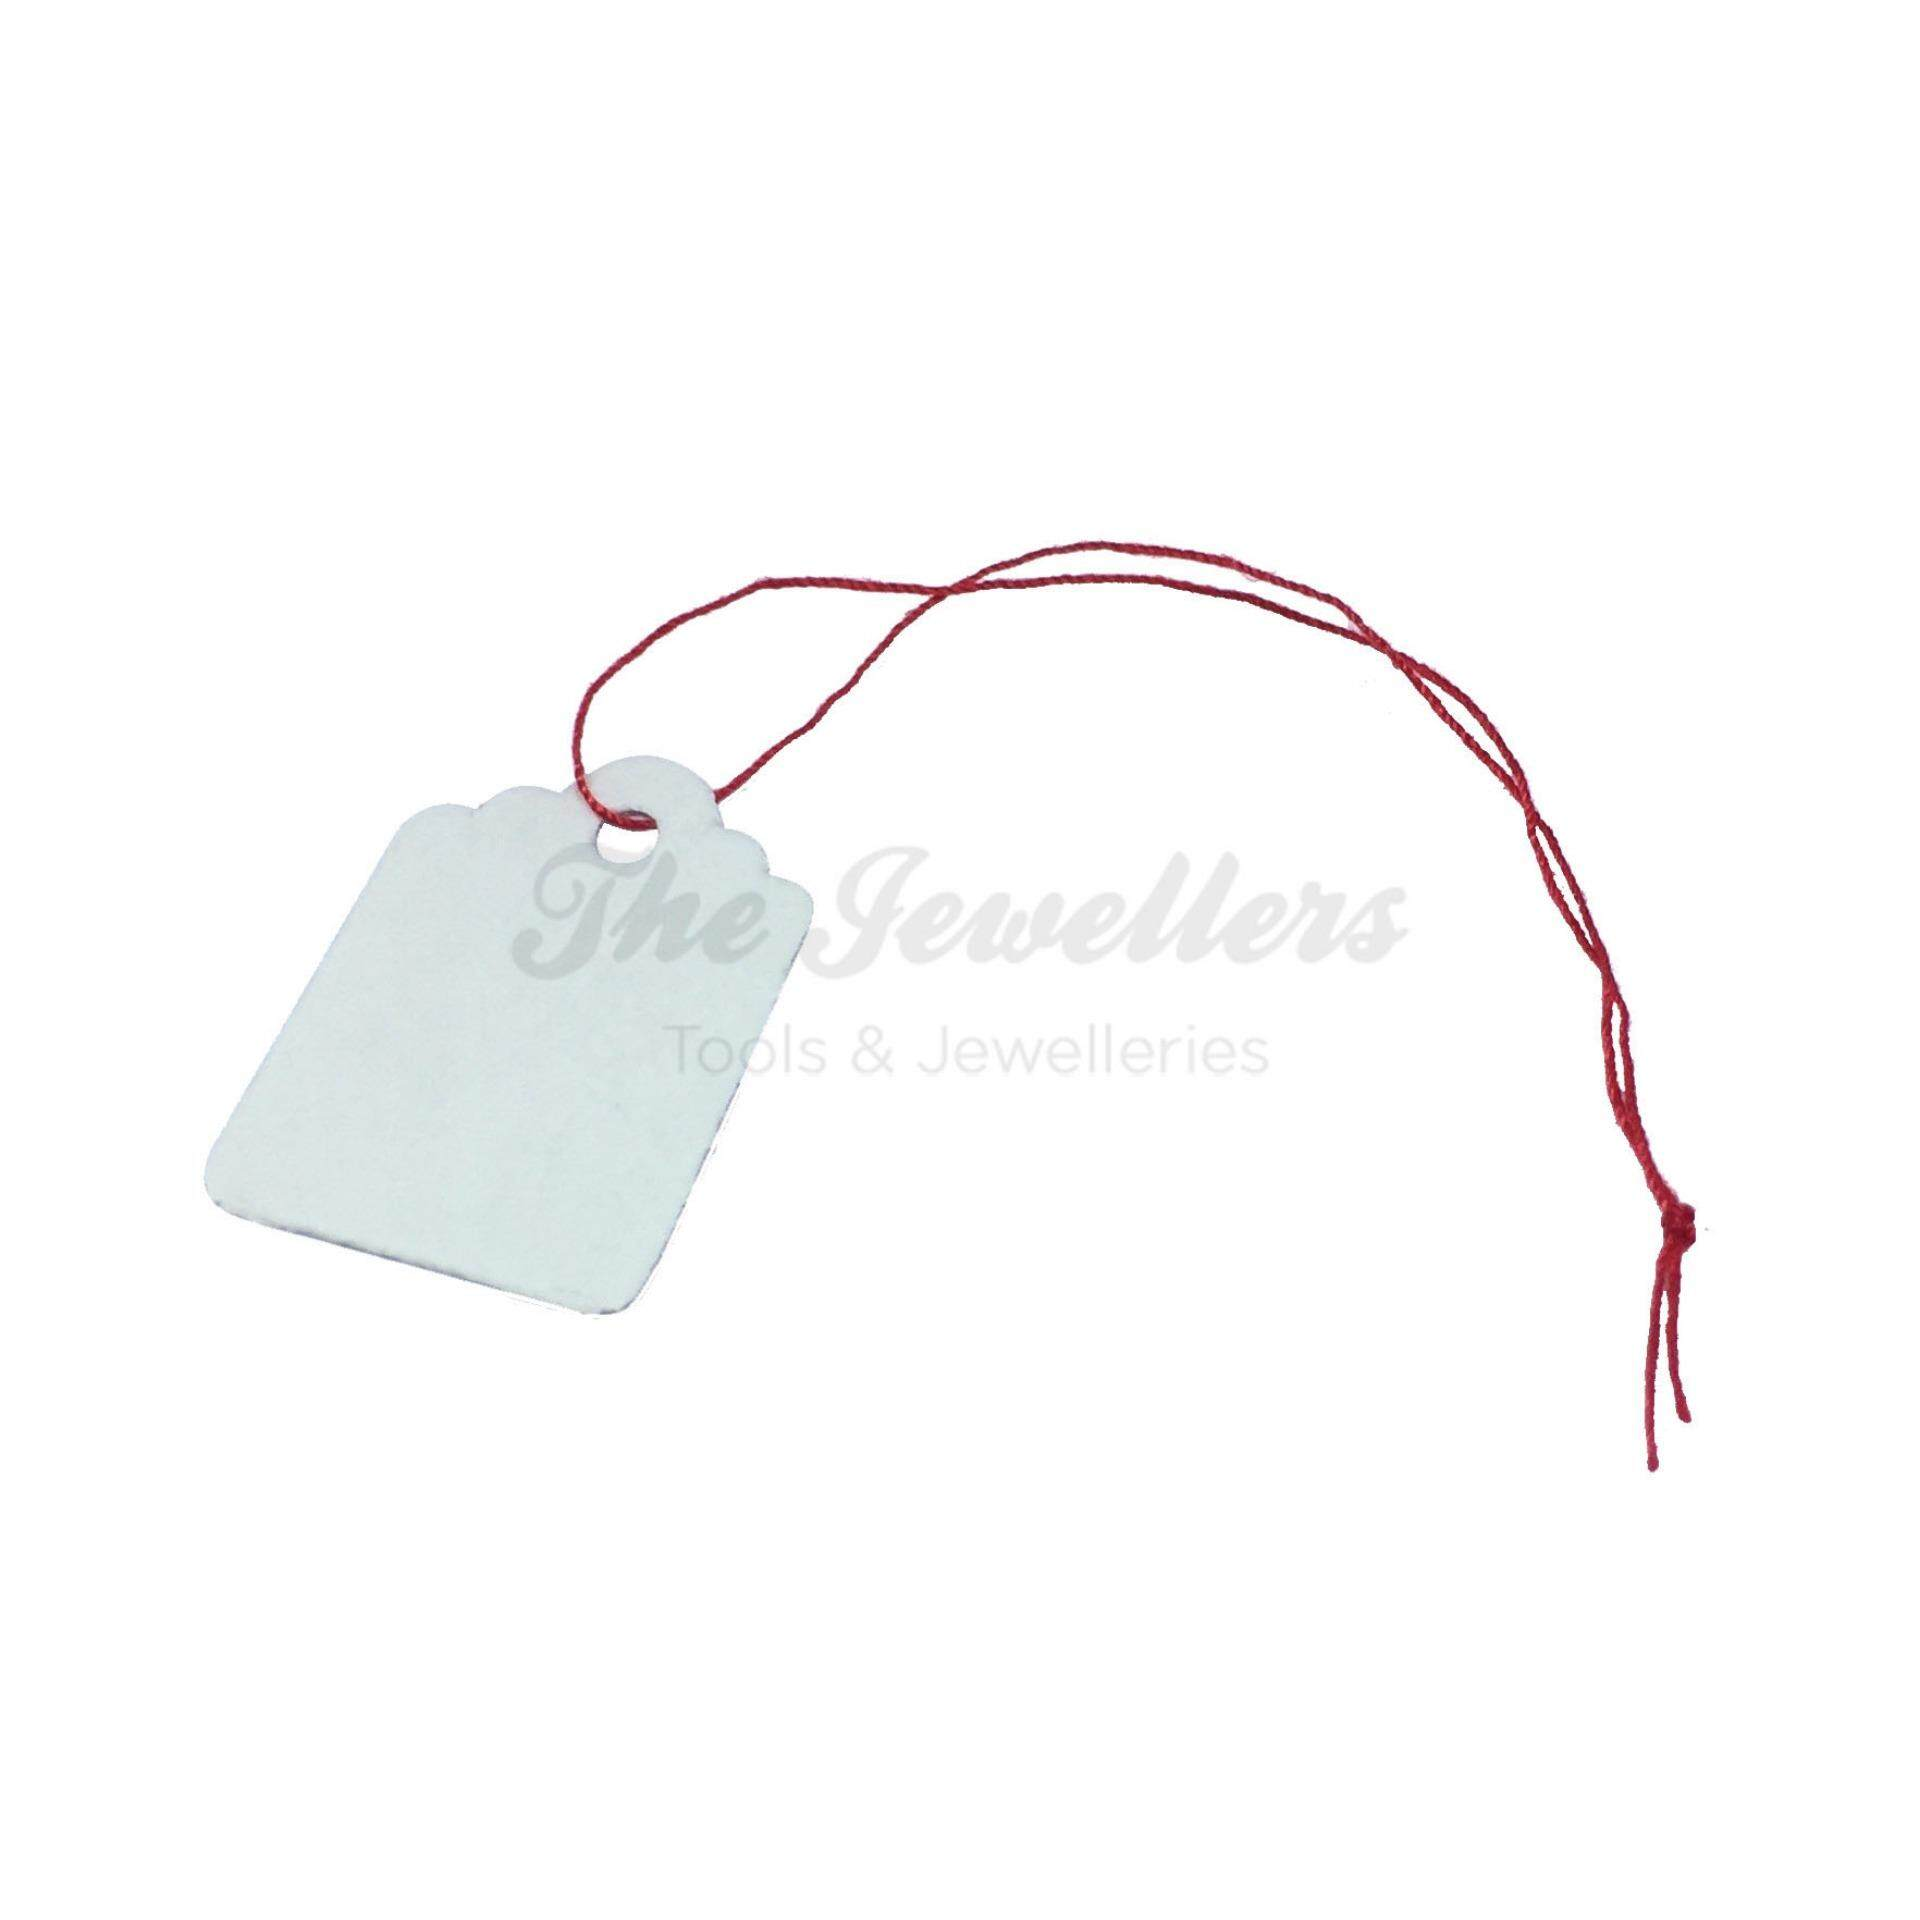 450+-pcs Rectangular Shape White Colour Jewellery Price Tag with Thin Red Thread